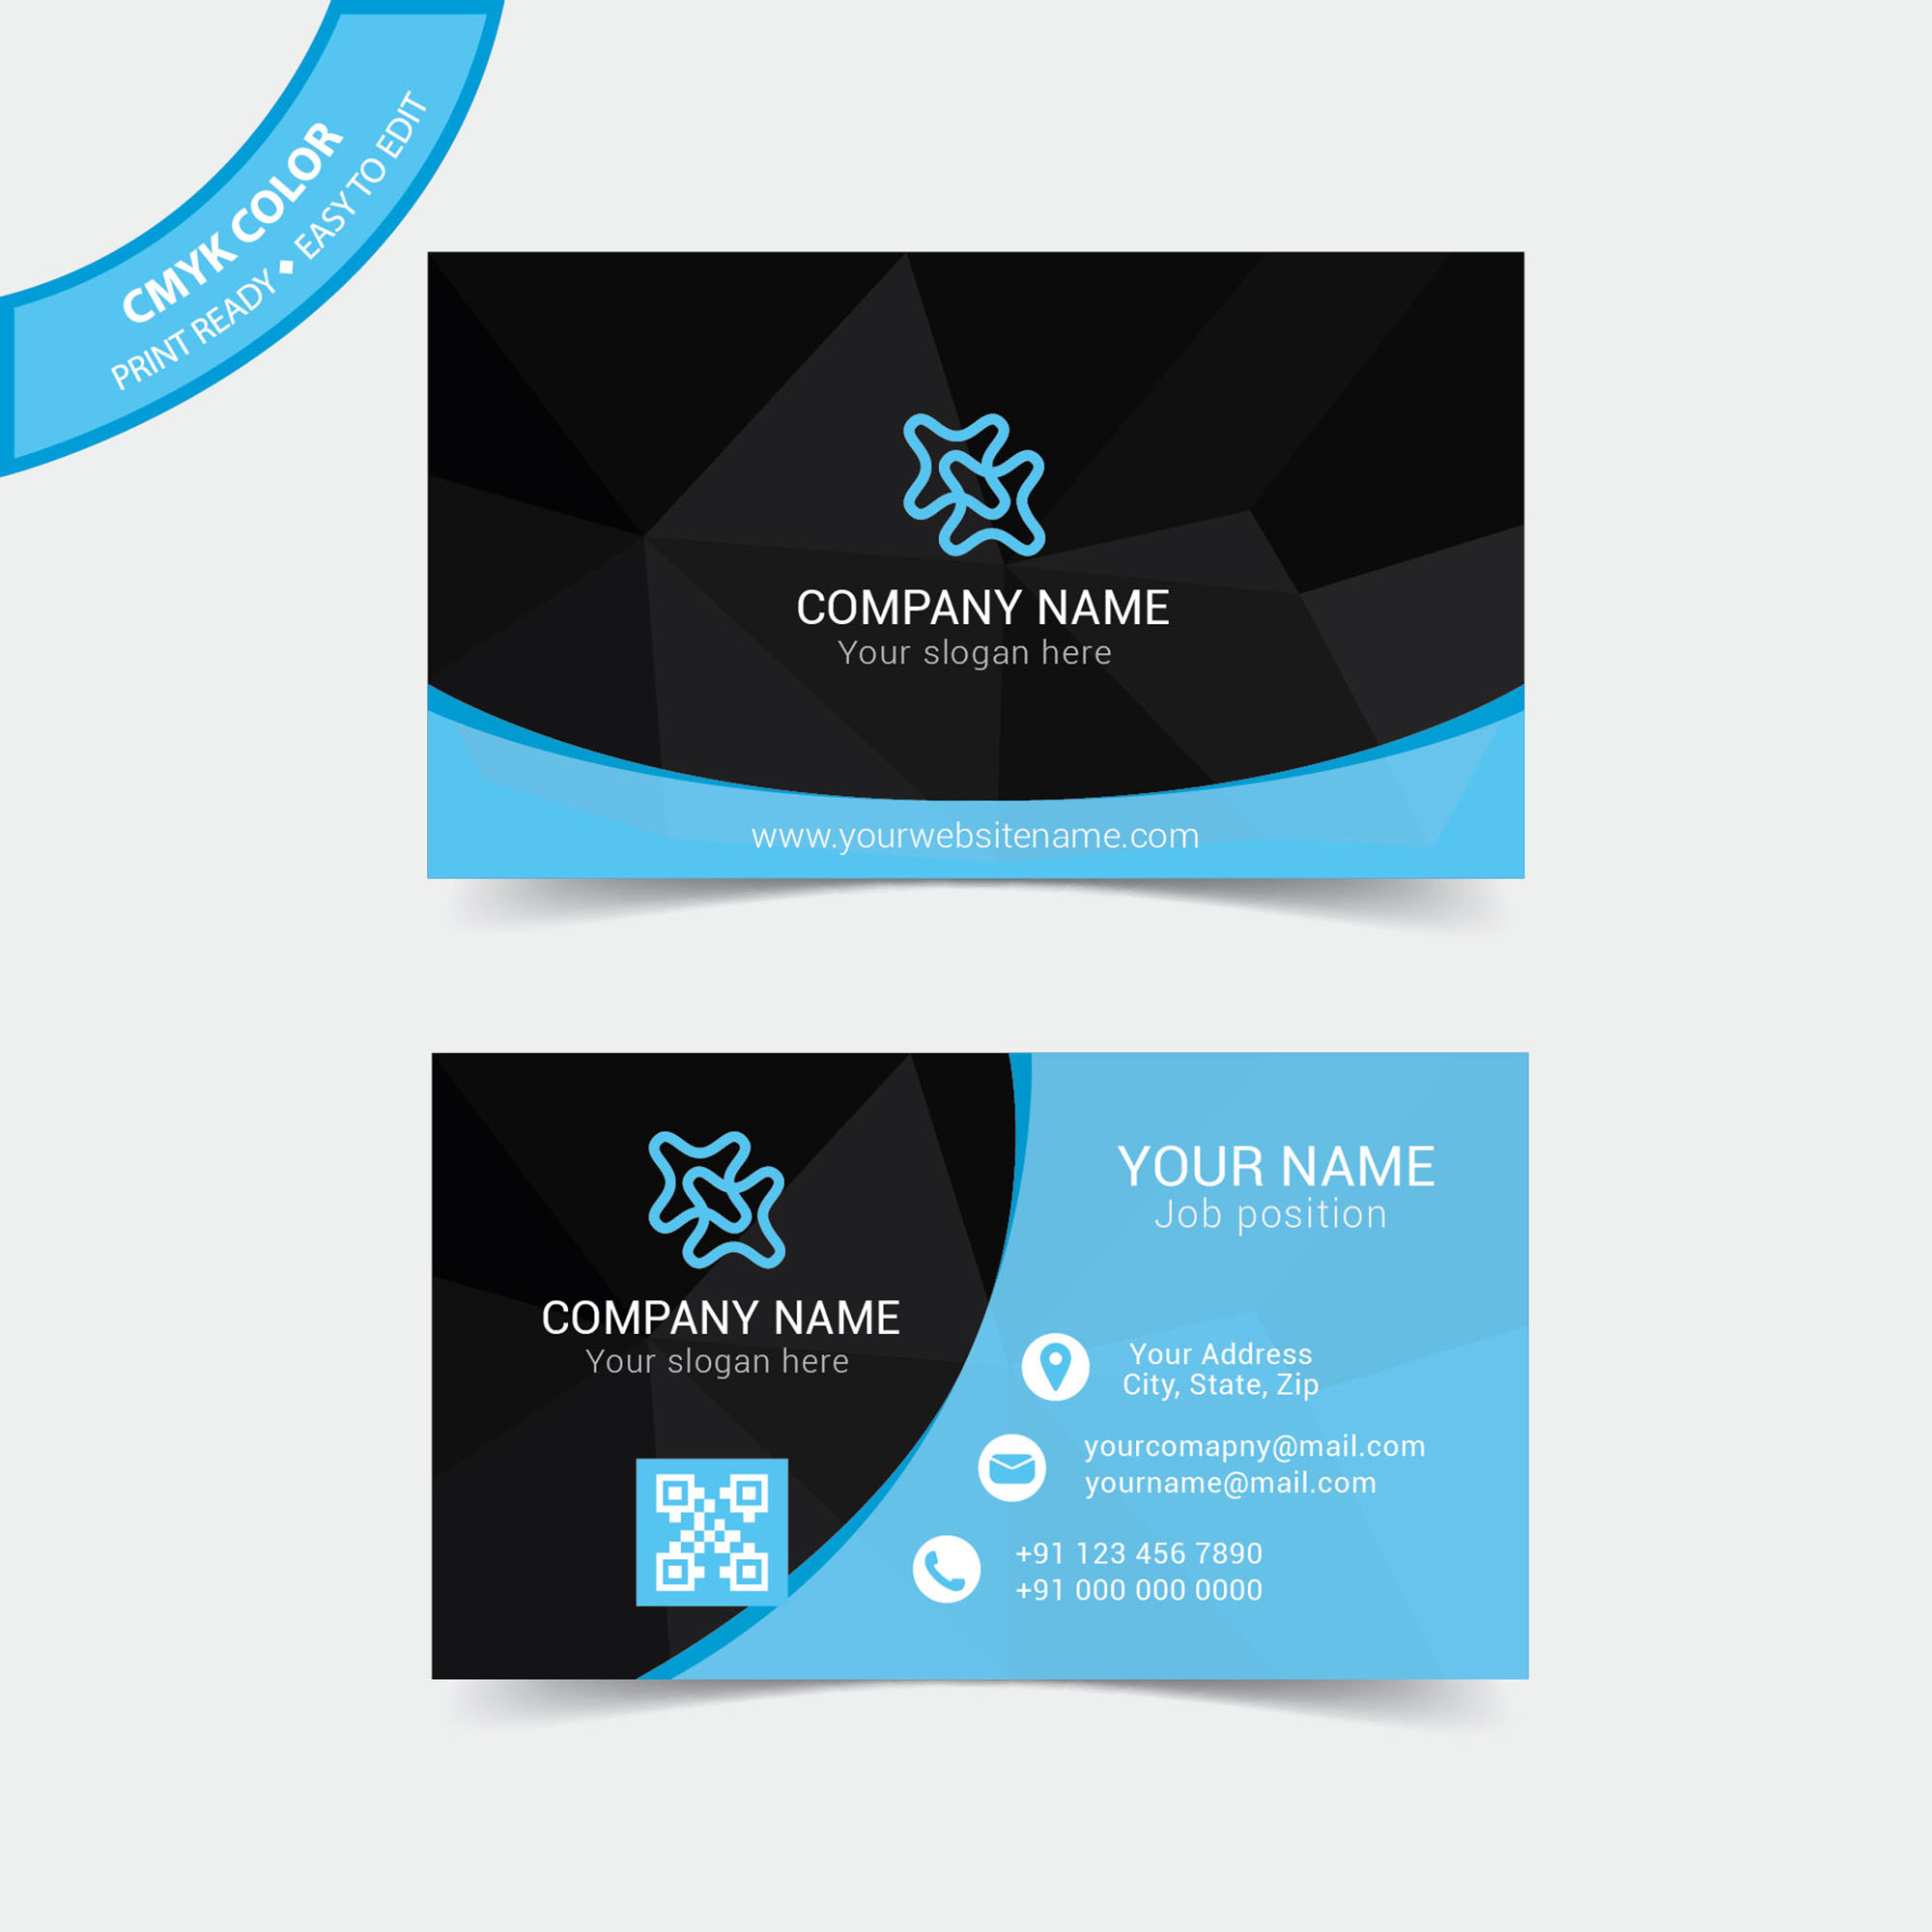 Business Cards Free Download for Commercial Use - Wisxi.com